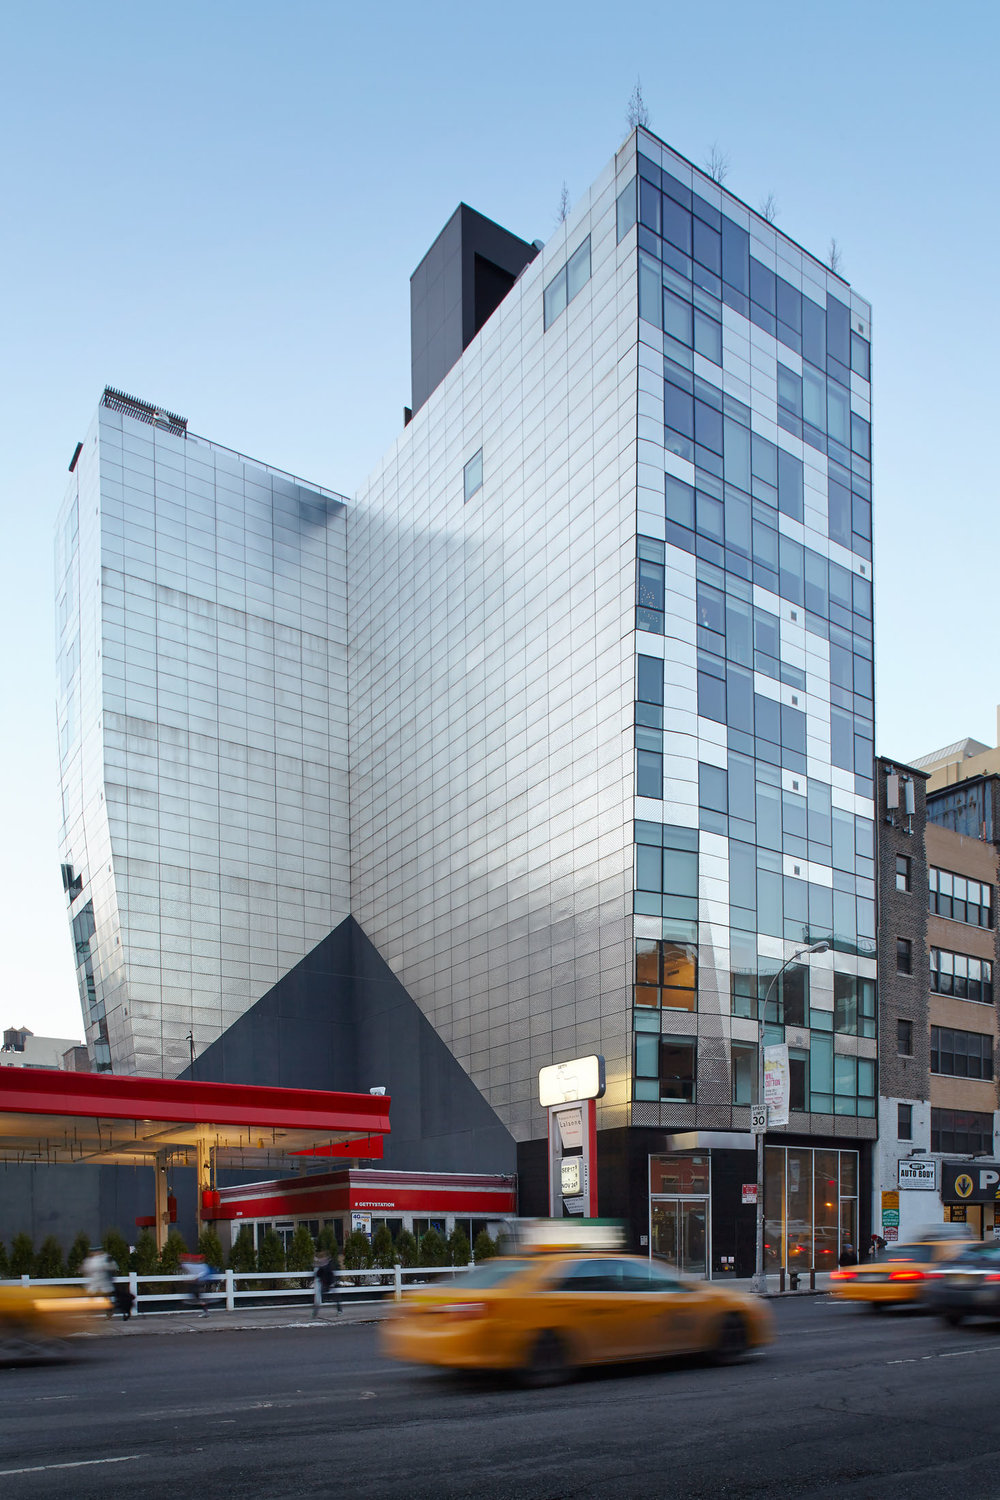 245 Tenth Avenue  Chelsea NYC  Goshow Architects